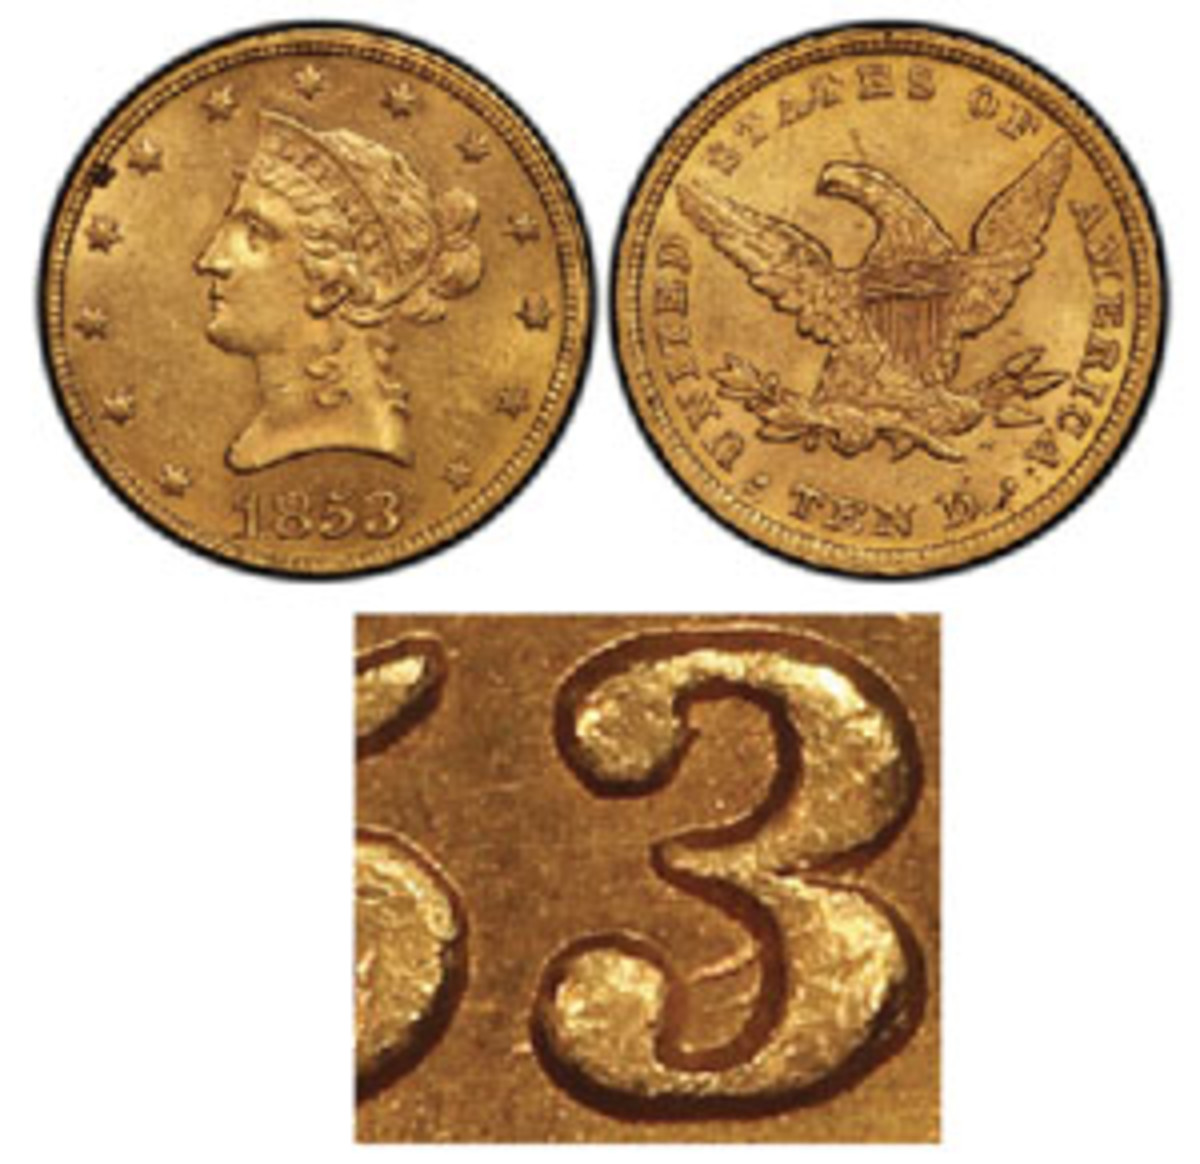 If this 1853 gold $10 were yours, would you have spotted the overdate shown?